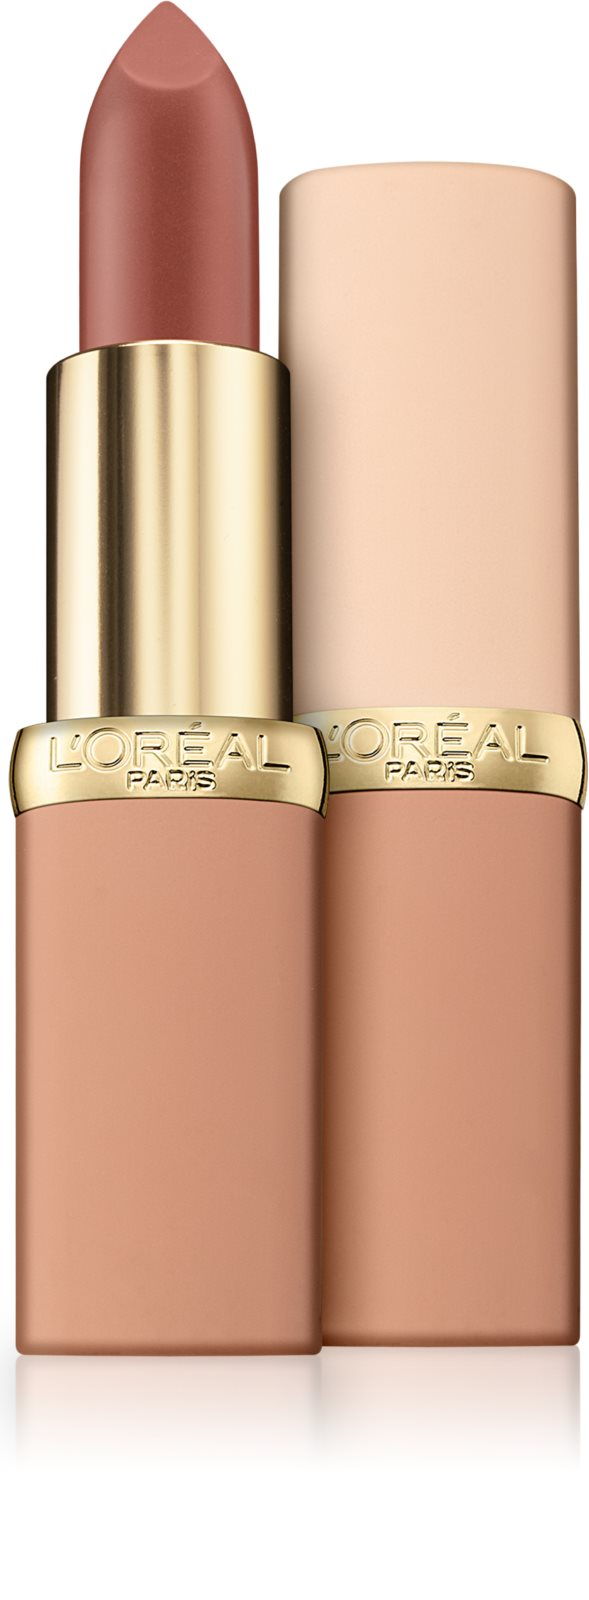 loreal-paris-color-riche-matte-free-the-nudes-hidratalo-matt-ruzs.jpg